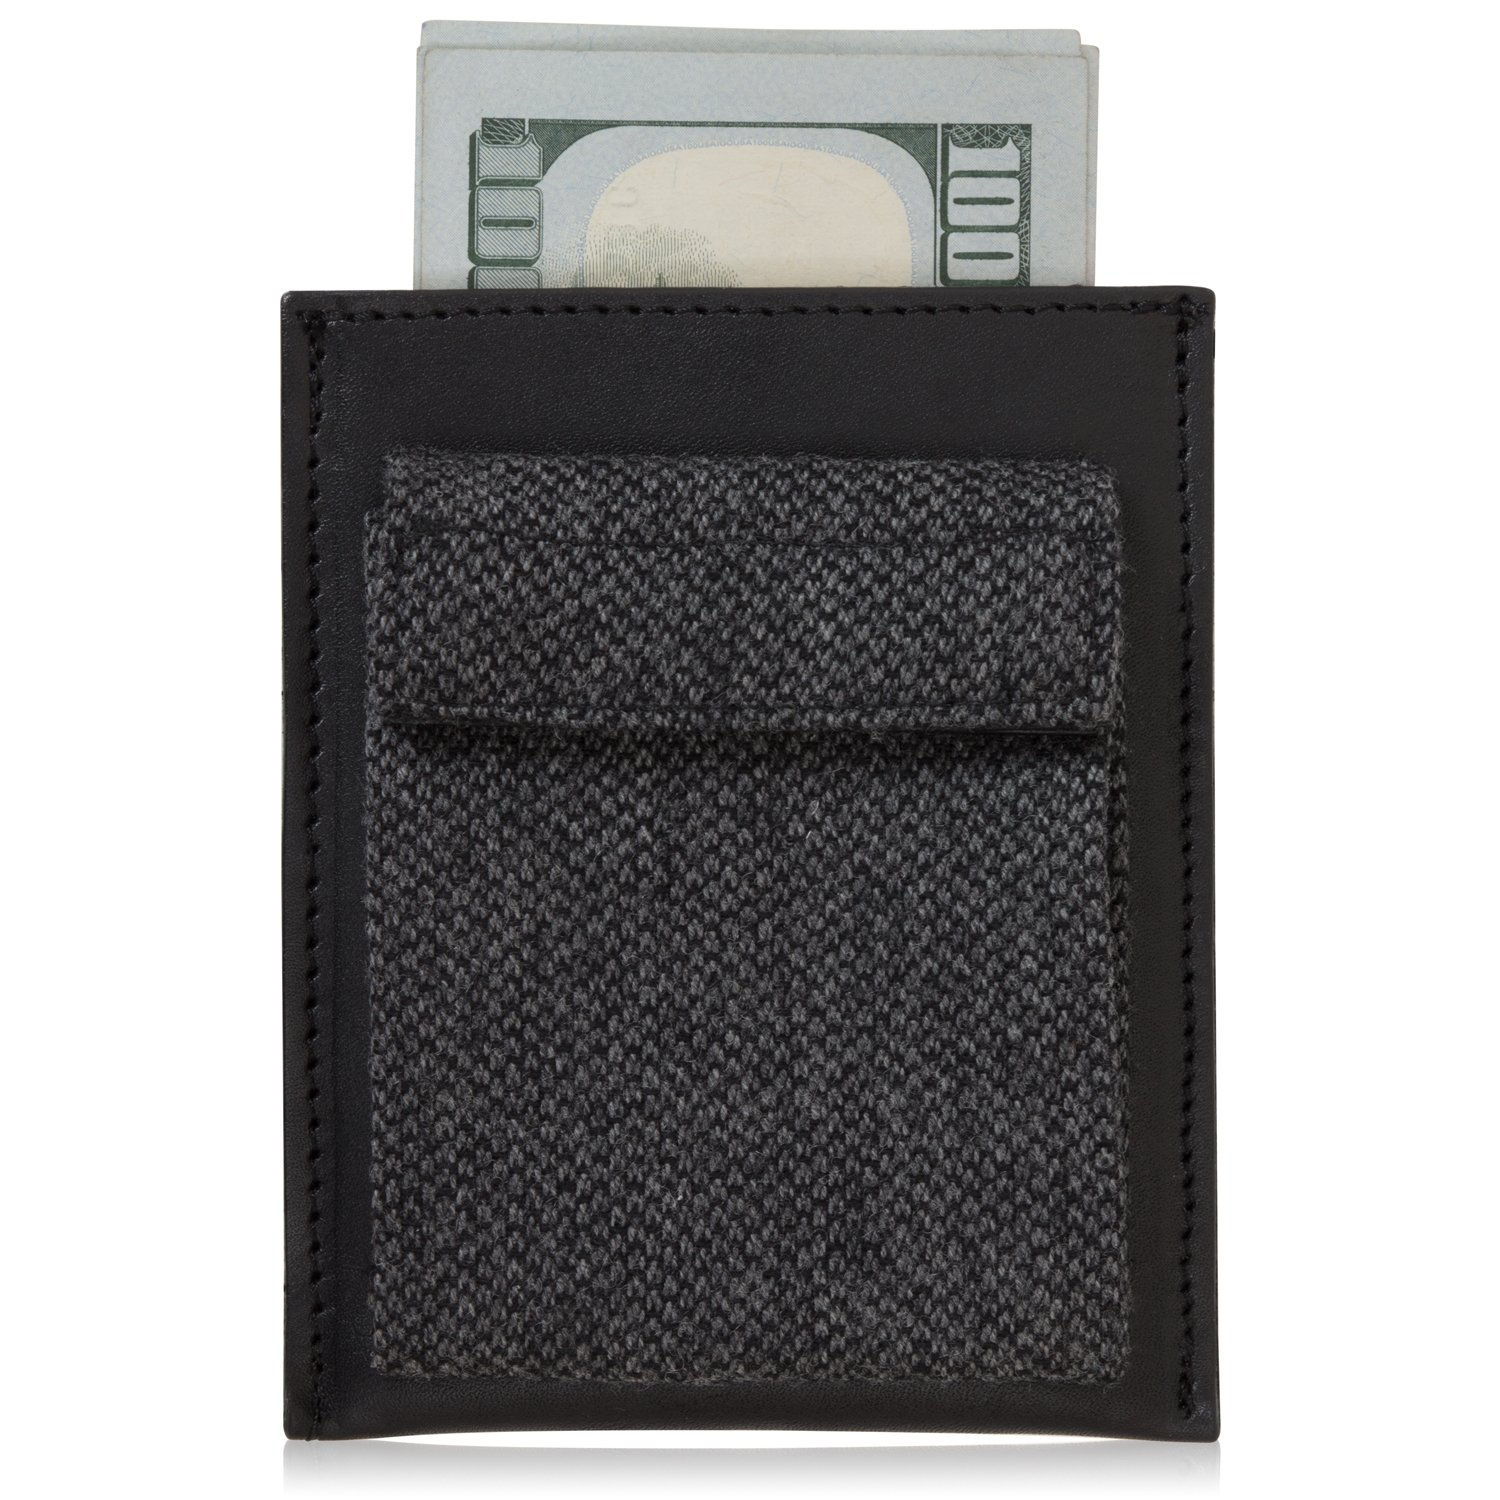 Men's Slim Wallet, Genuine Leather & Fine Tweed - Credit Card, ID & Cash Slots with Coin Pouch - Black - By Agog